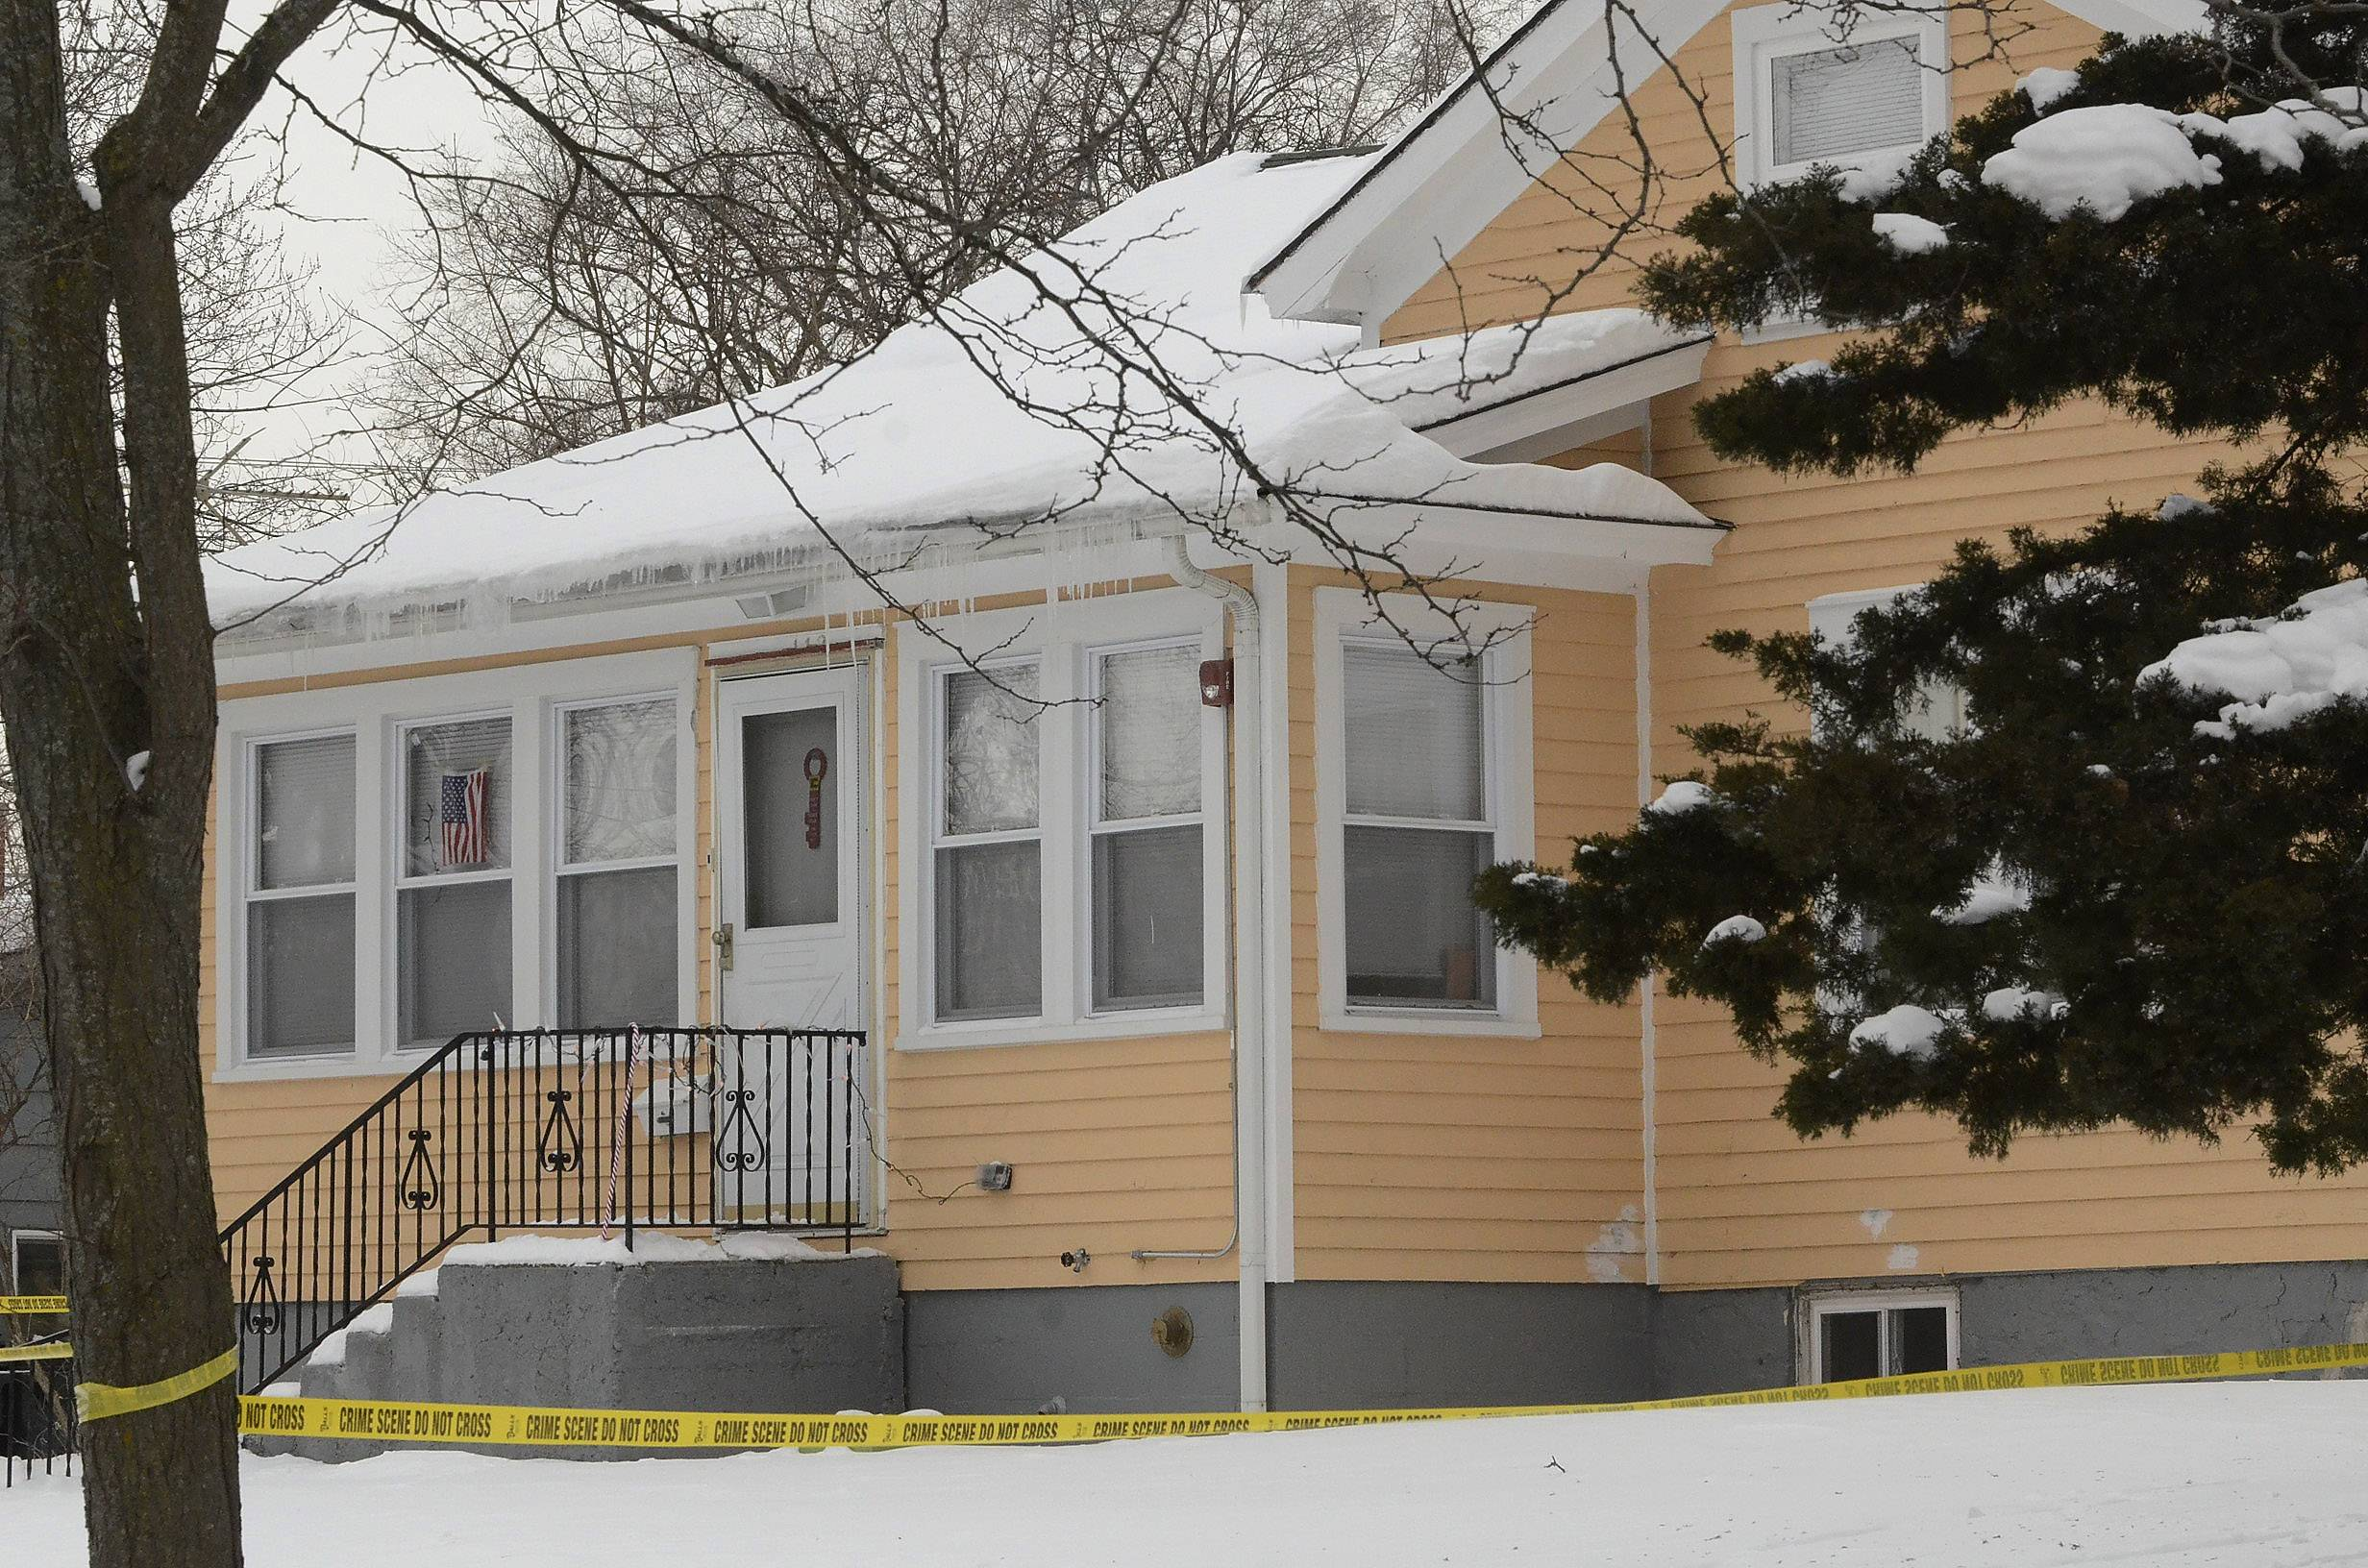 This is the house on the 100 block of South Hager Avenue in Barrington where Markisha Jones and Gene Edwards lived with their twin 7-month-old daughters at the time of Mya's death.